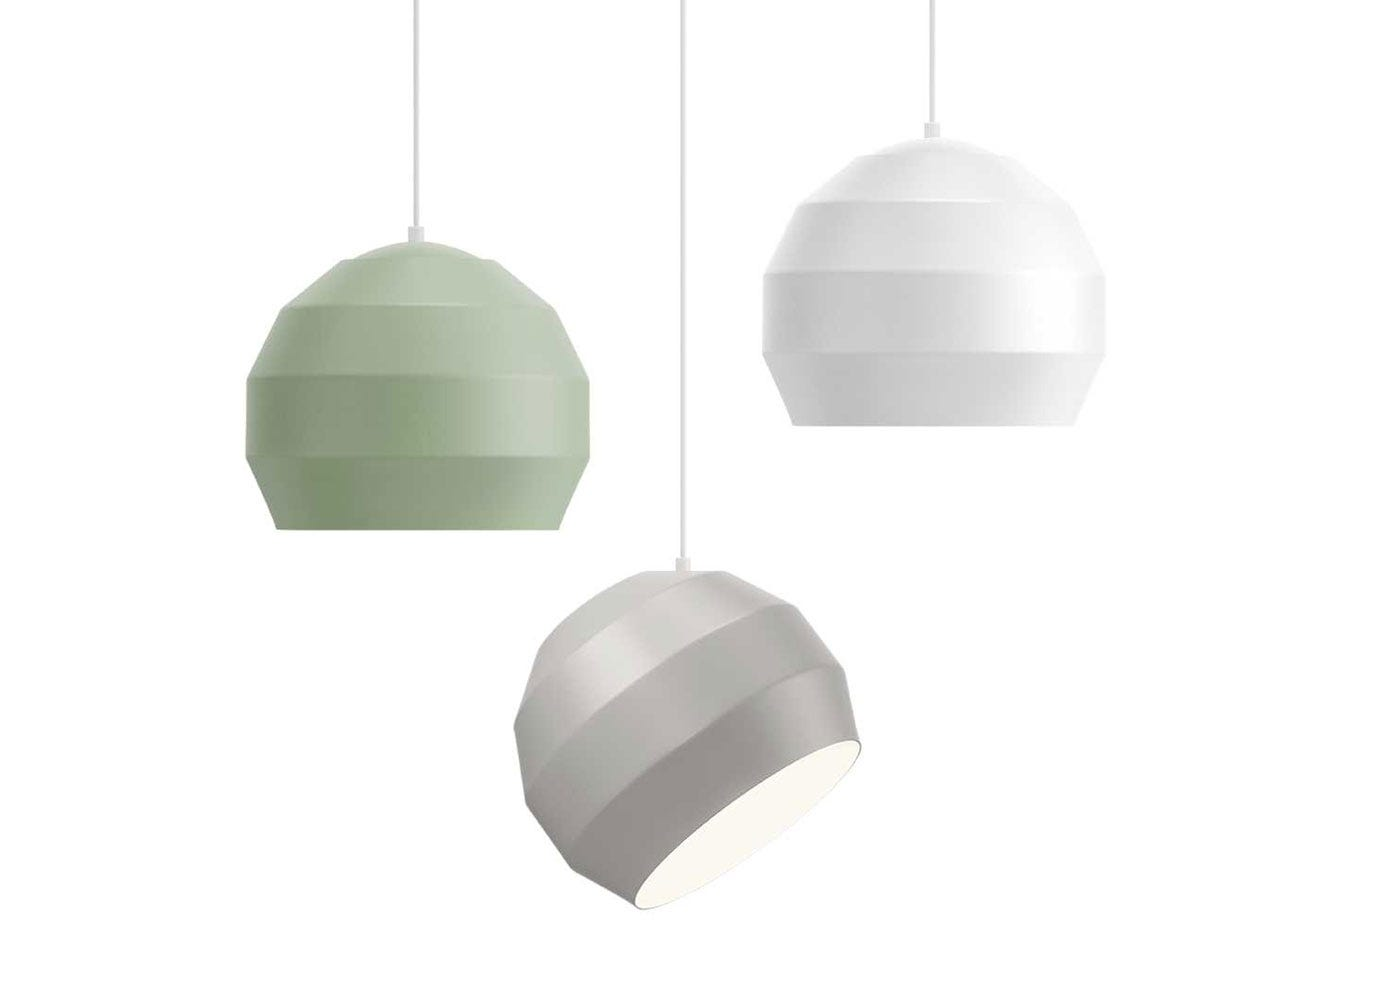 Pitch pendant hung in a cluster, from left to right: Pitch pendant green, Pitch pendant grey, Pitch pendant white